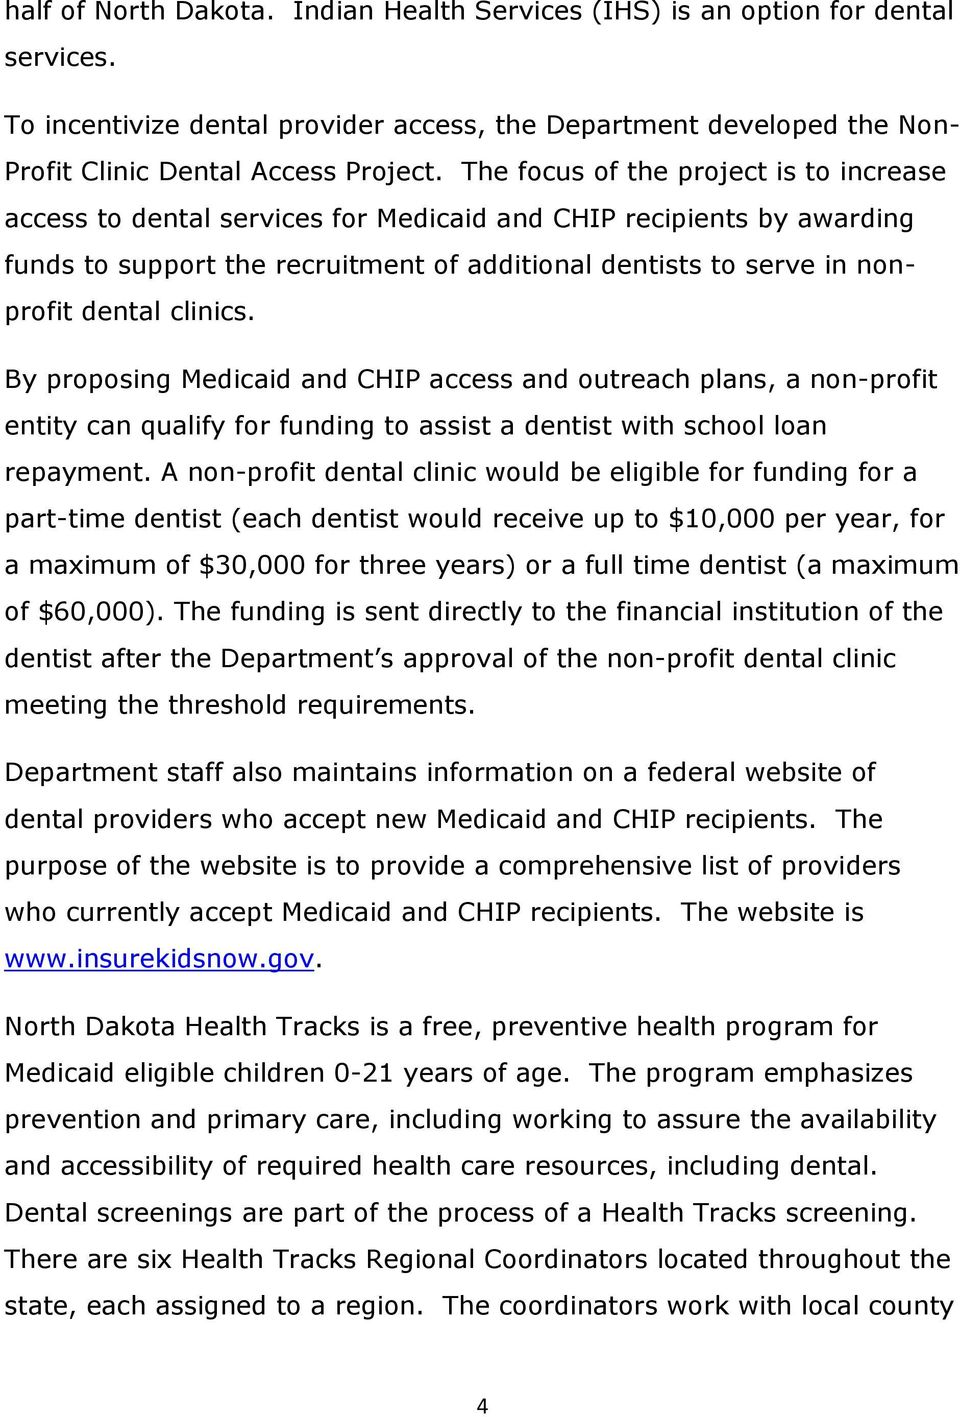 clinics. By proposing Medicaid and CHIP access and outreach plans, a non-profit entity can qualify for funding to assist a dentist with school loan repayment.